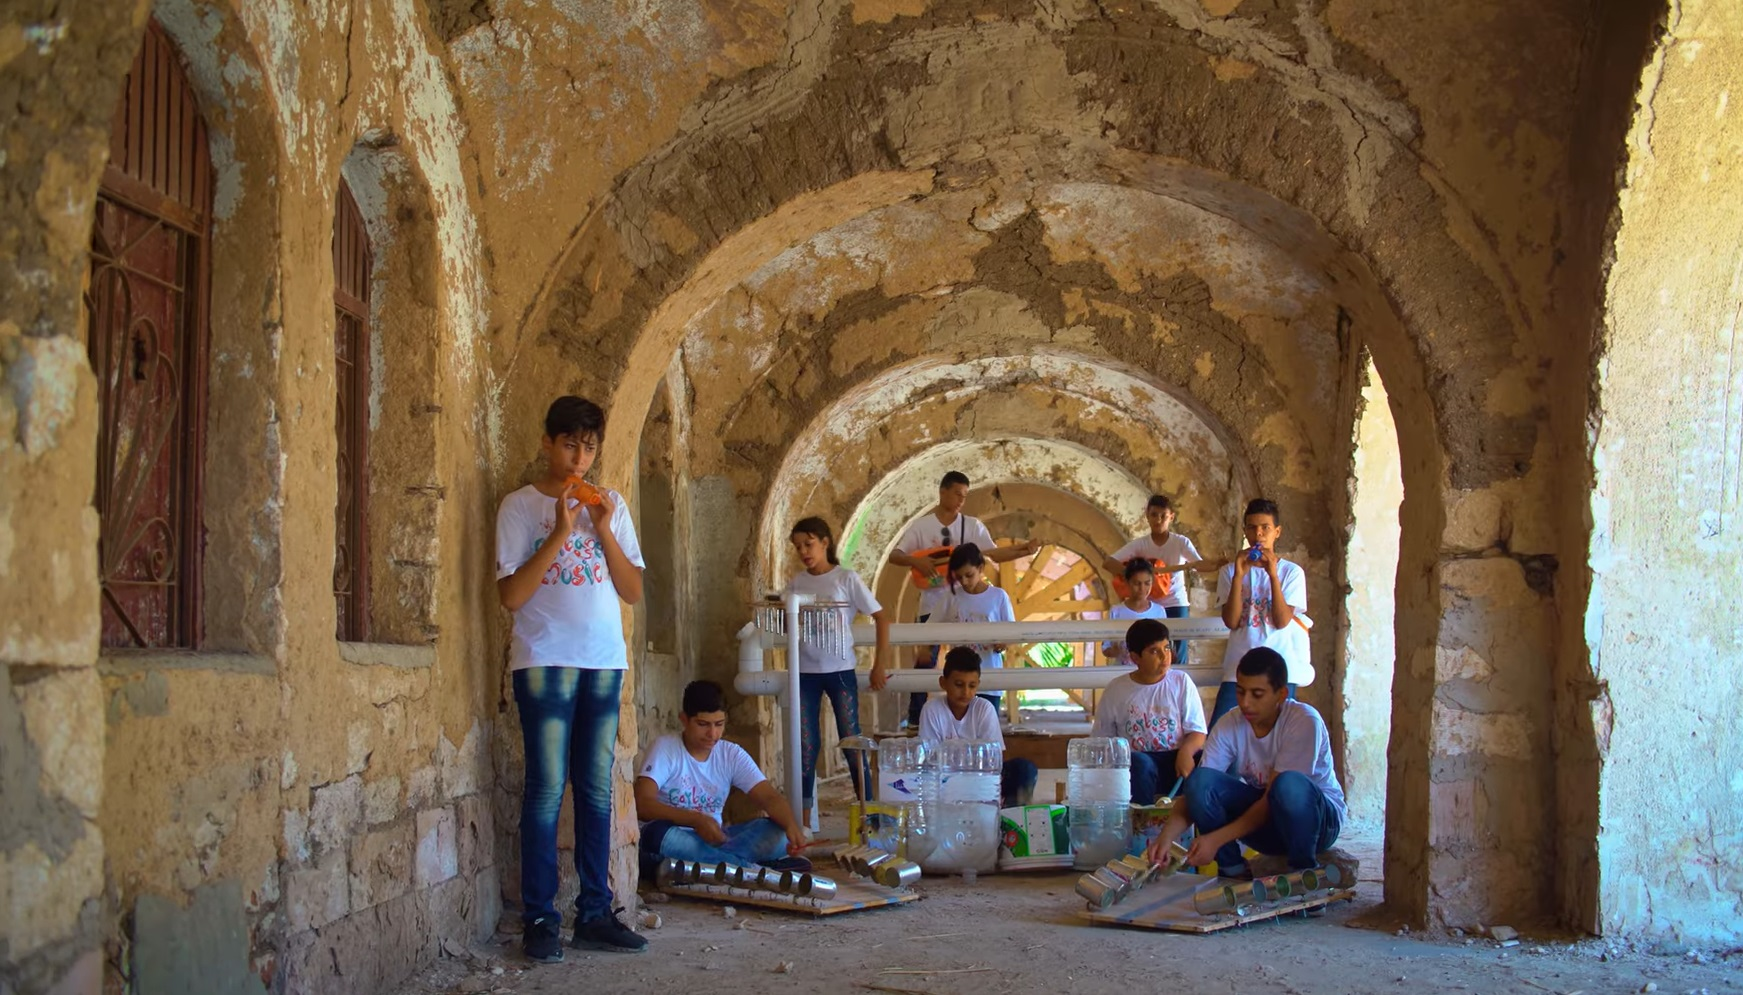 This Band of Egyptian Children Plays Music With Recycled Trash Only